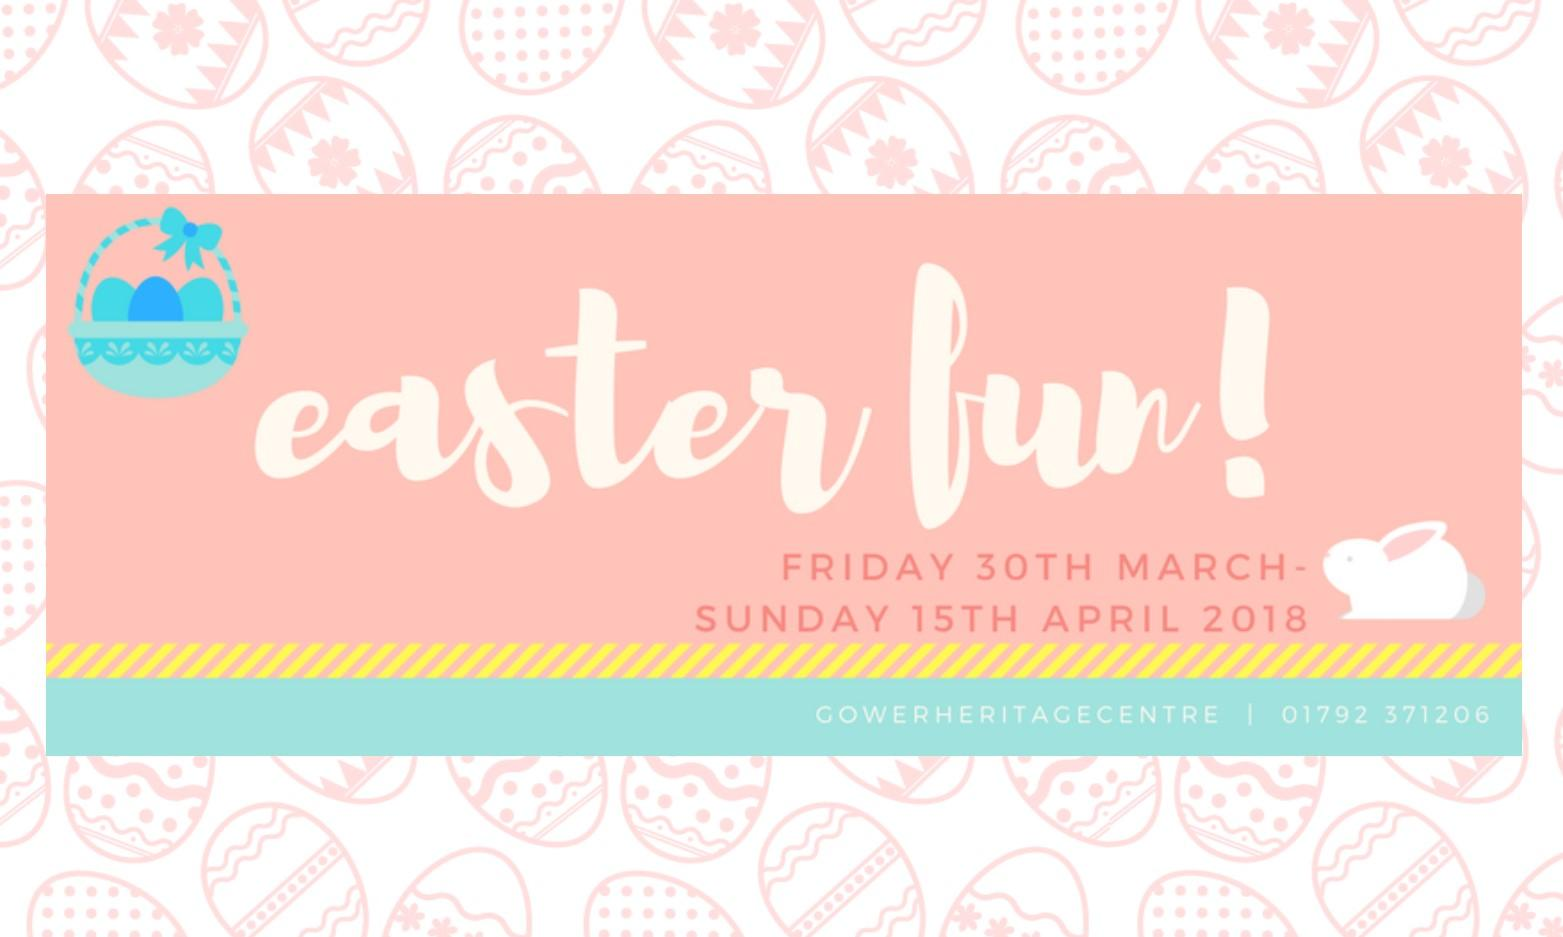 Easter Fun at Gower Heritage Centre